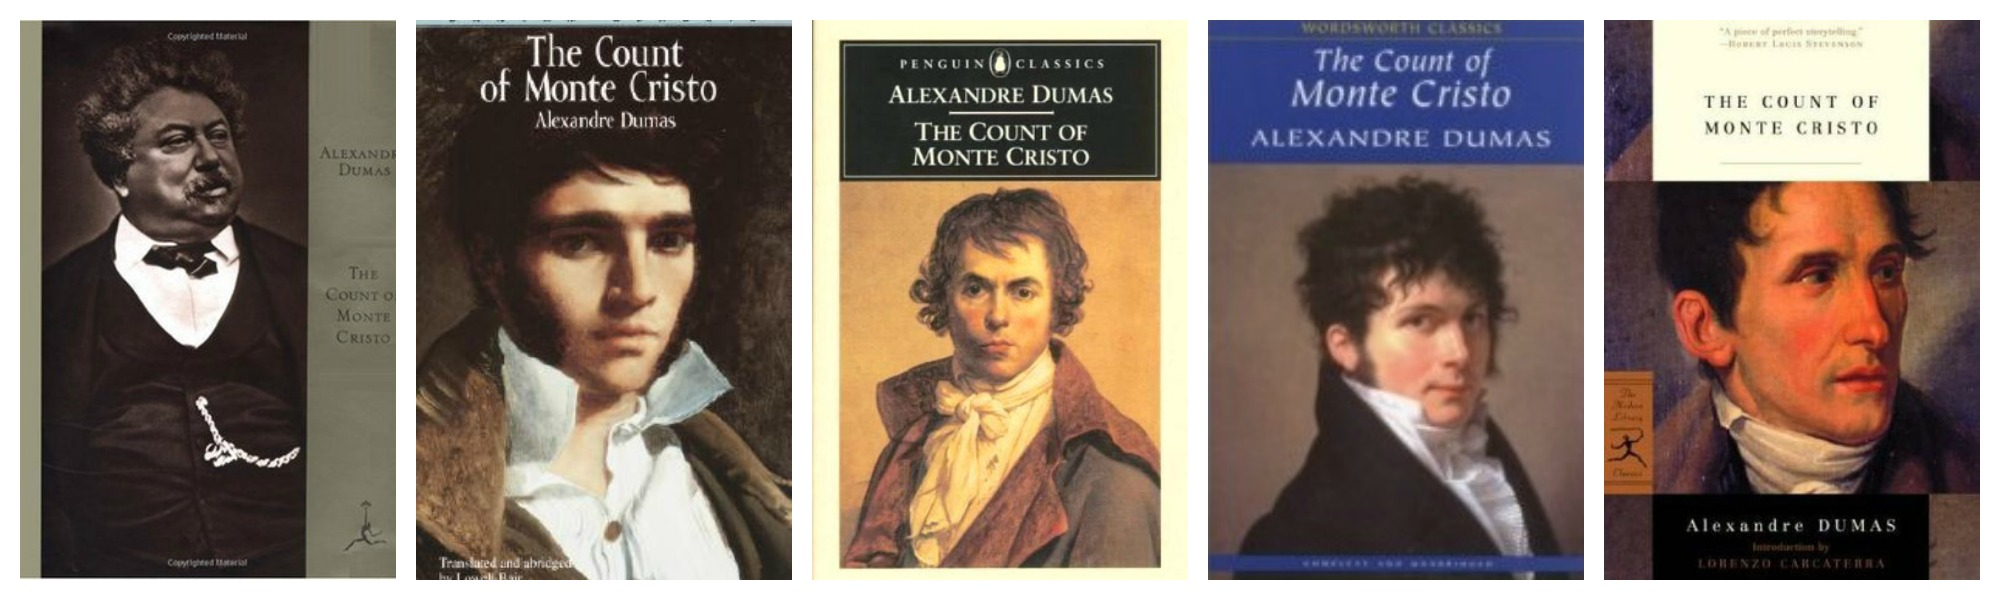 cover love the count of monte cristo deliberate reader the count of monte cristo covers 2